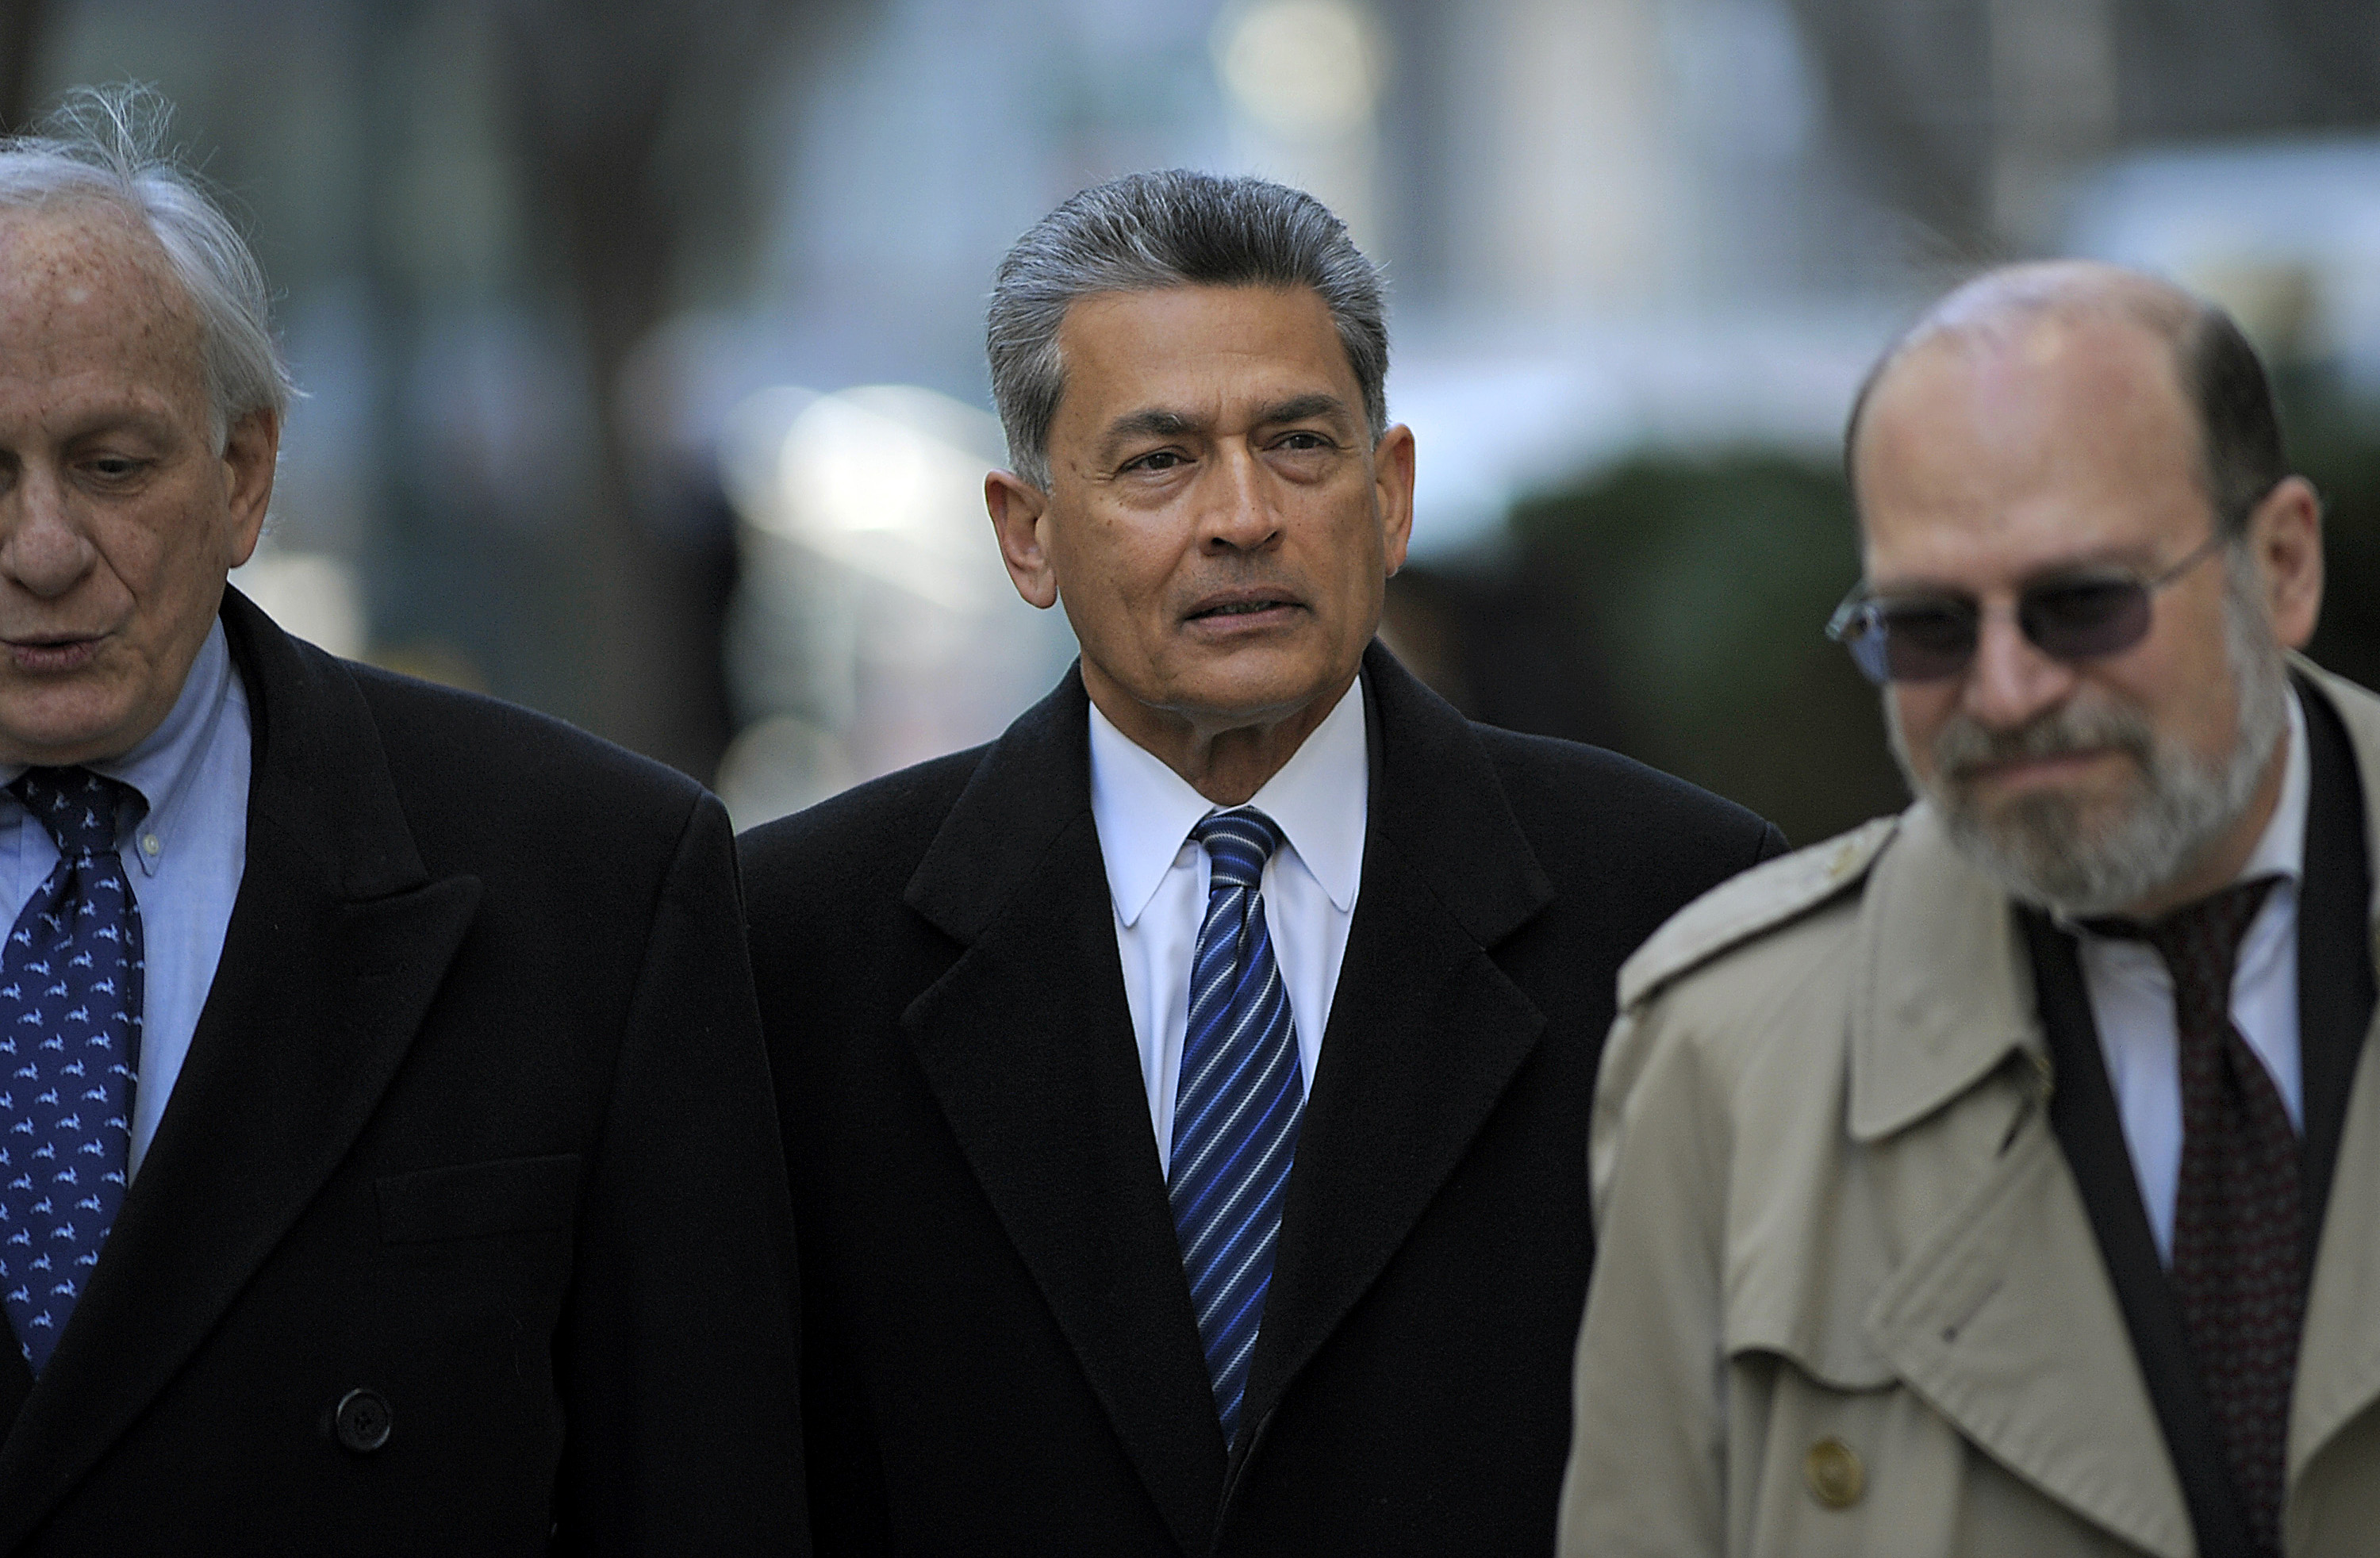 Former Goldman Sachs Director Rajat Gupta Arraignment On Insider Trading Charges